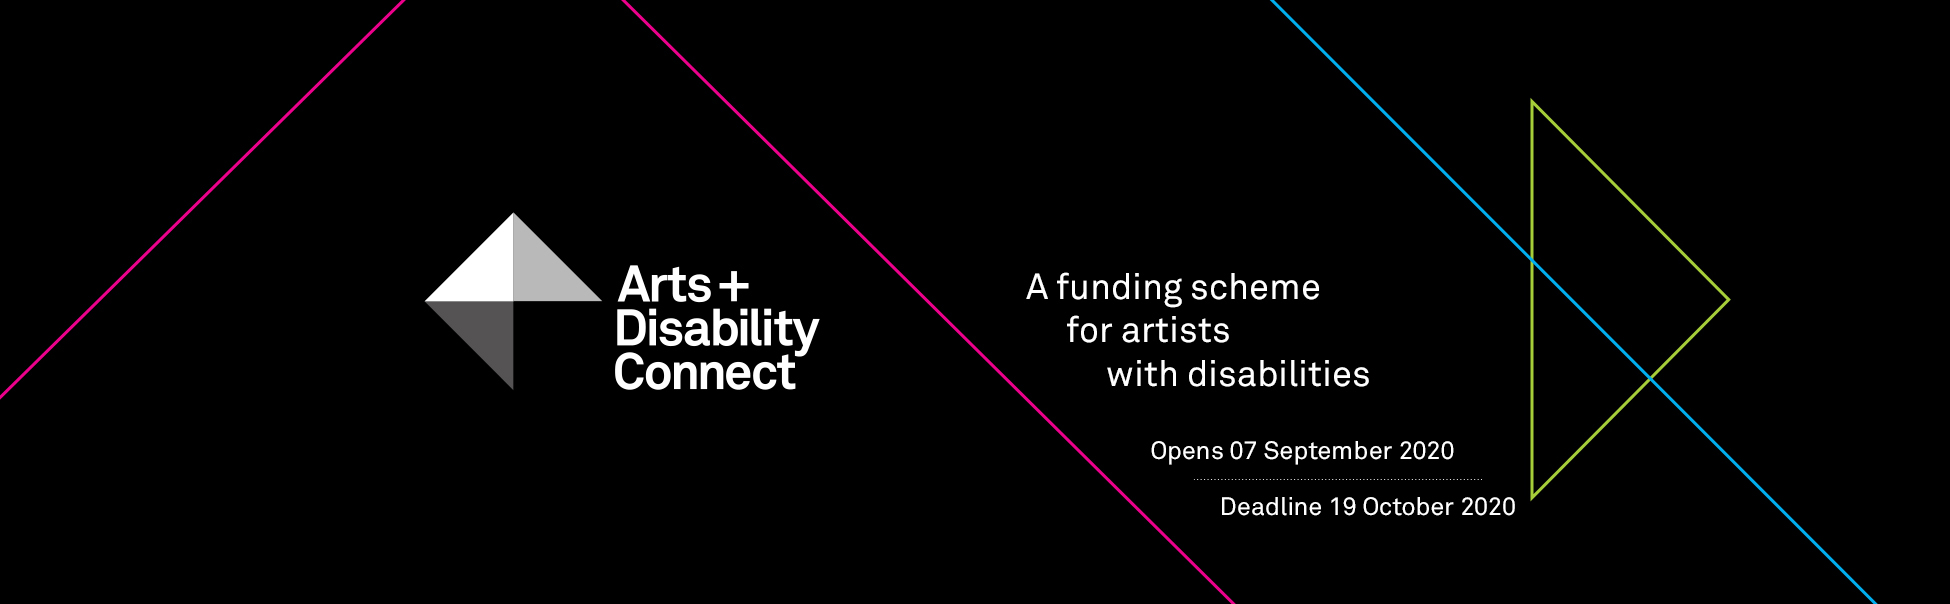 A funding scheme for artists with disabilities. Opens 07 September 2020. Deadline 19 October 2020